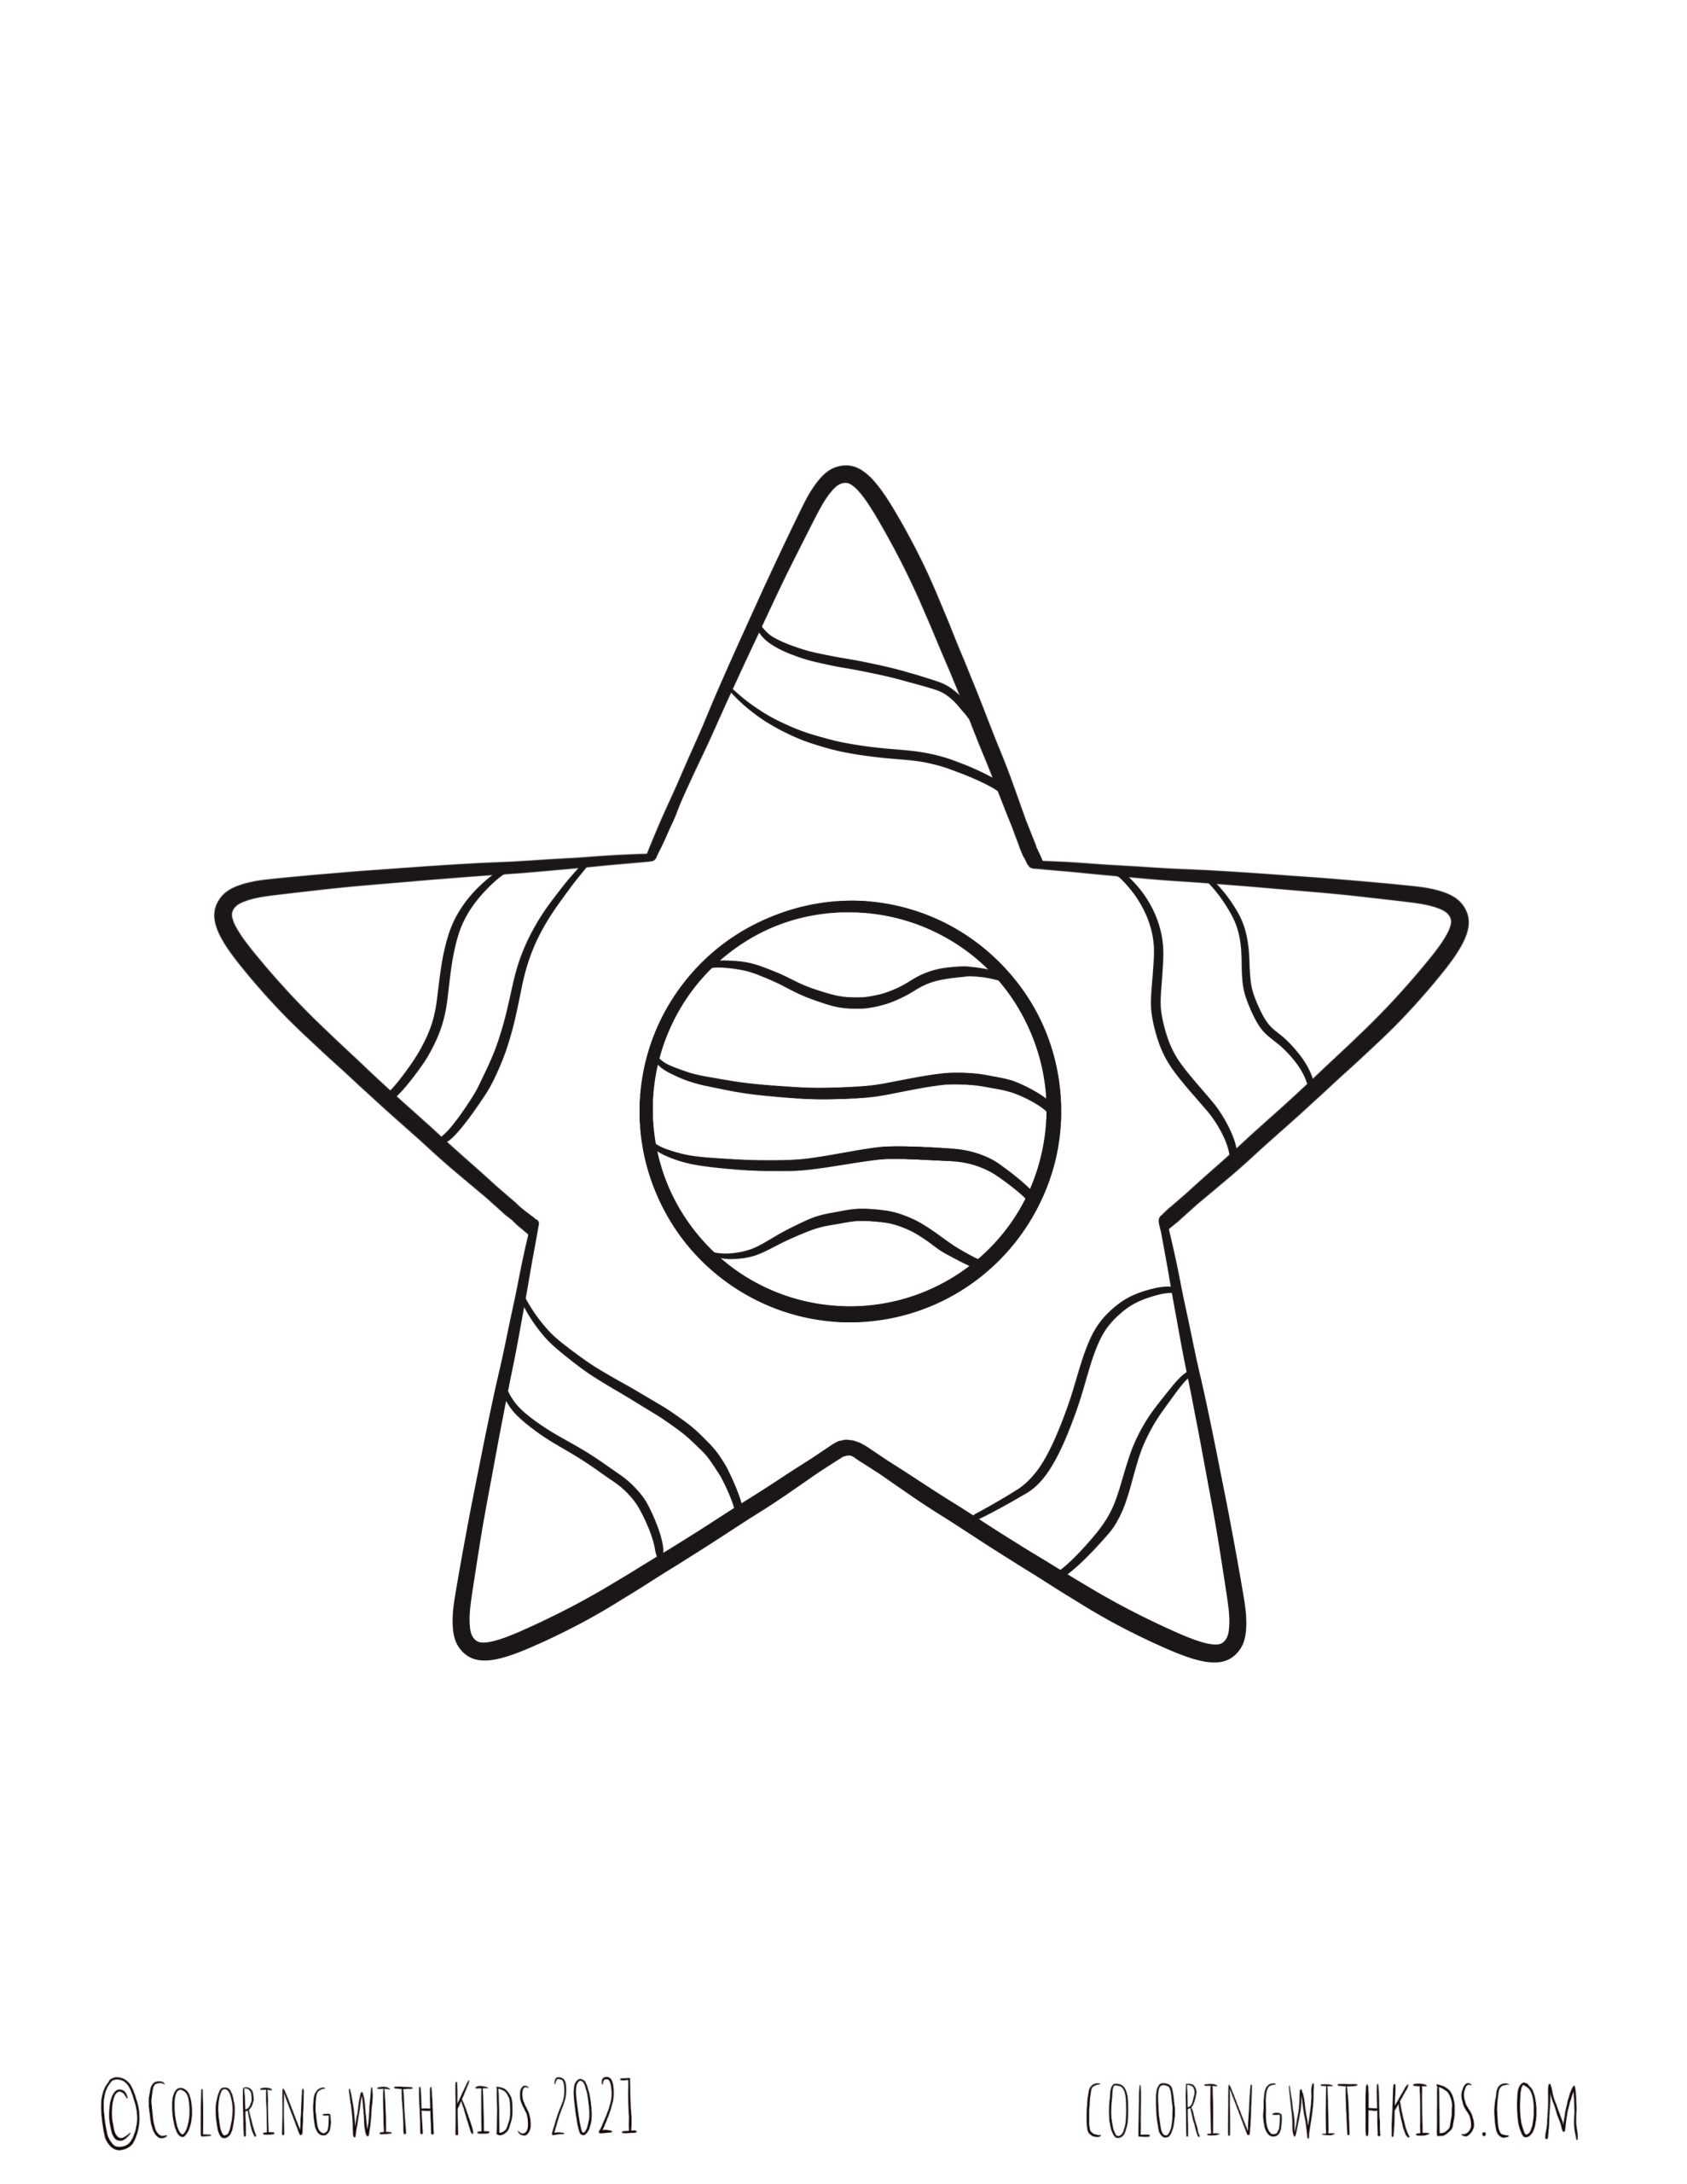 6 Inch Stars Coloring Page